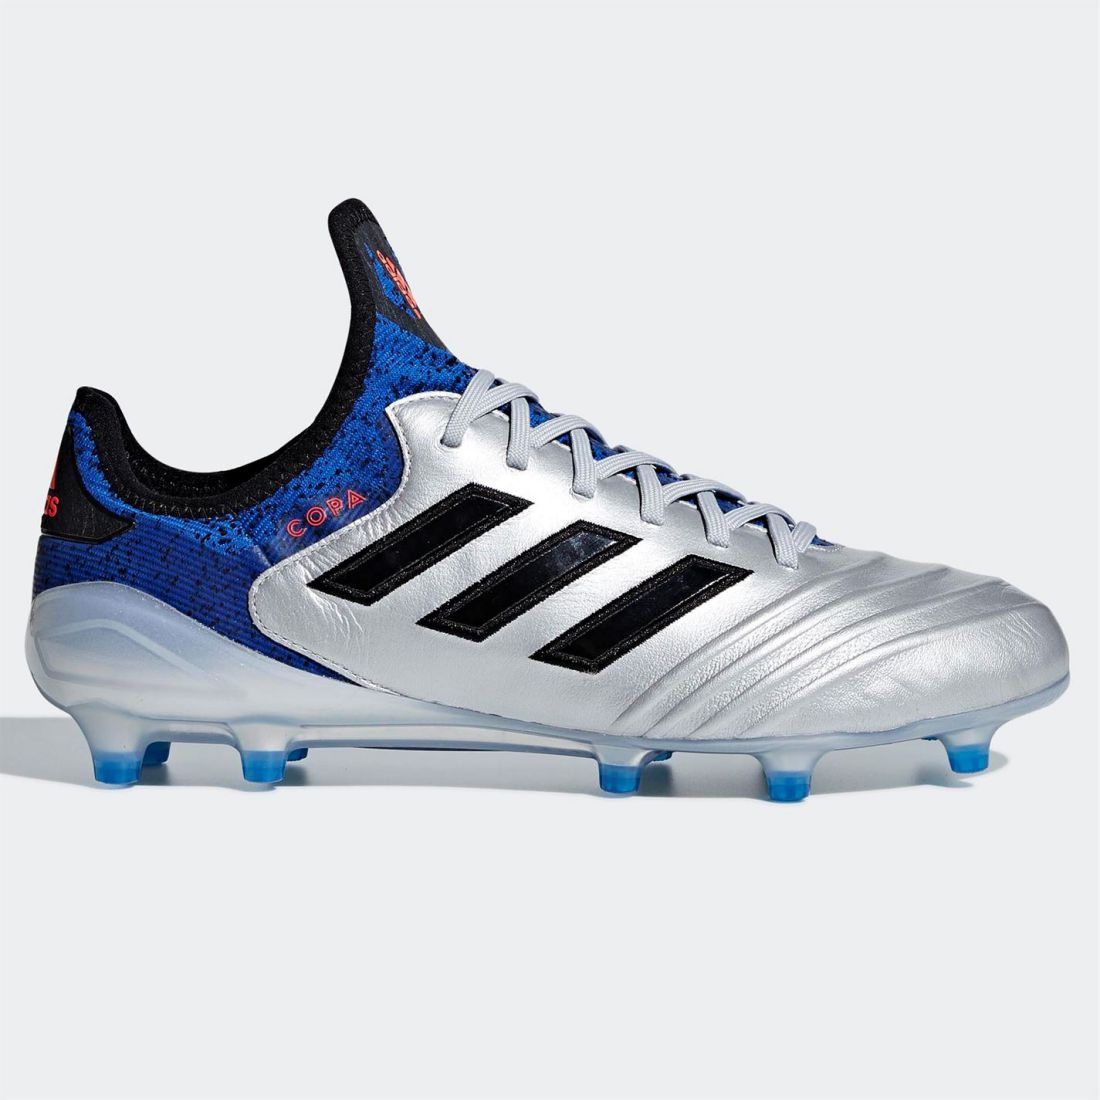 new arrival 2efe5 99fee adidas Copa 18.1 FG Football Boots Mens Gents Firm Ground Laces Fastened